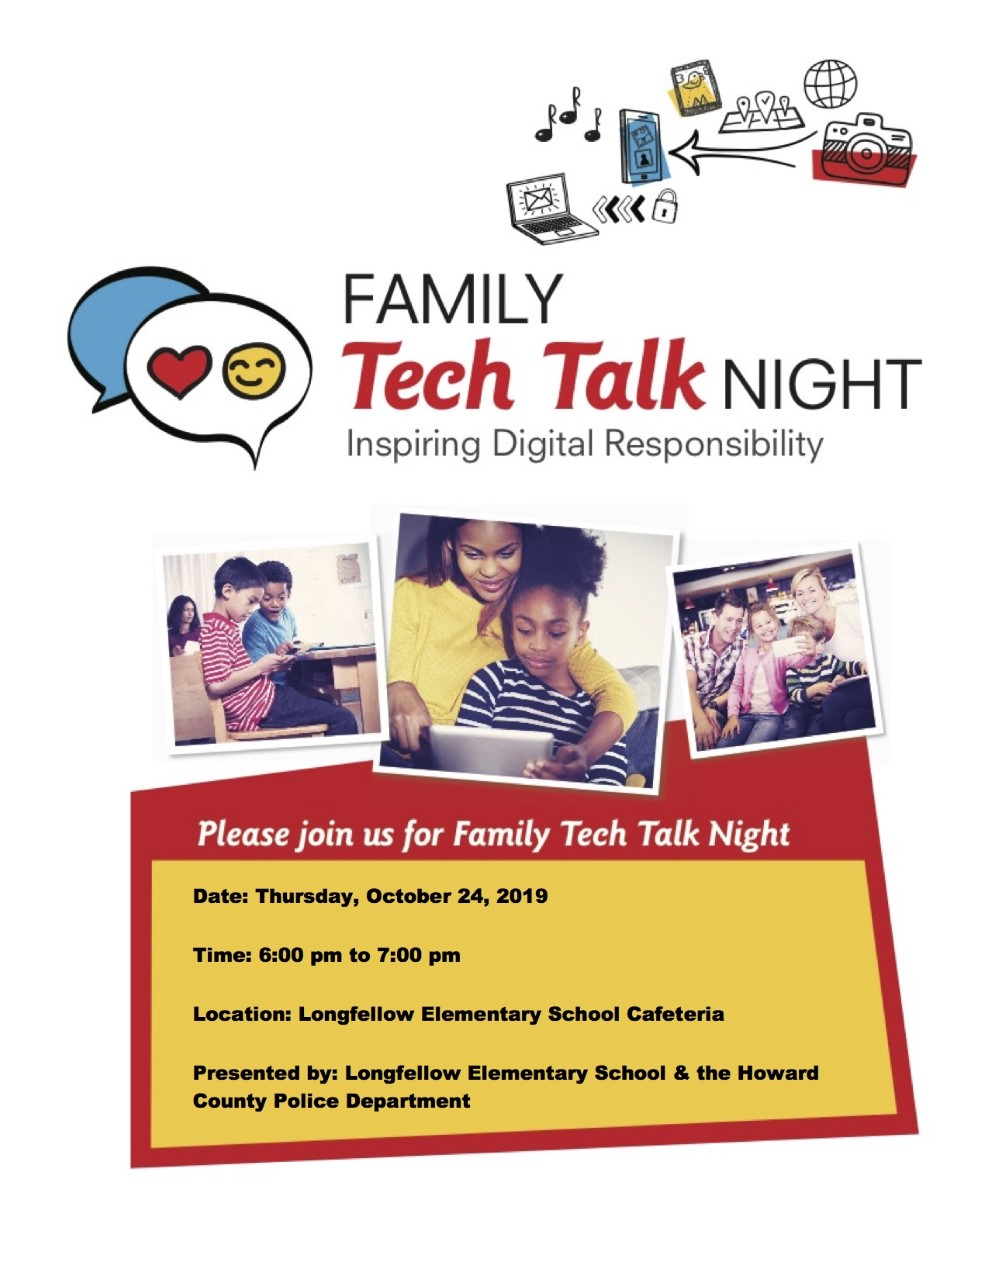 Family Tech Talk Night Thursday, November 24 from 6:00pm to 7:00pm in the Longfellow cafeteria